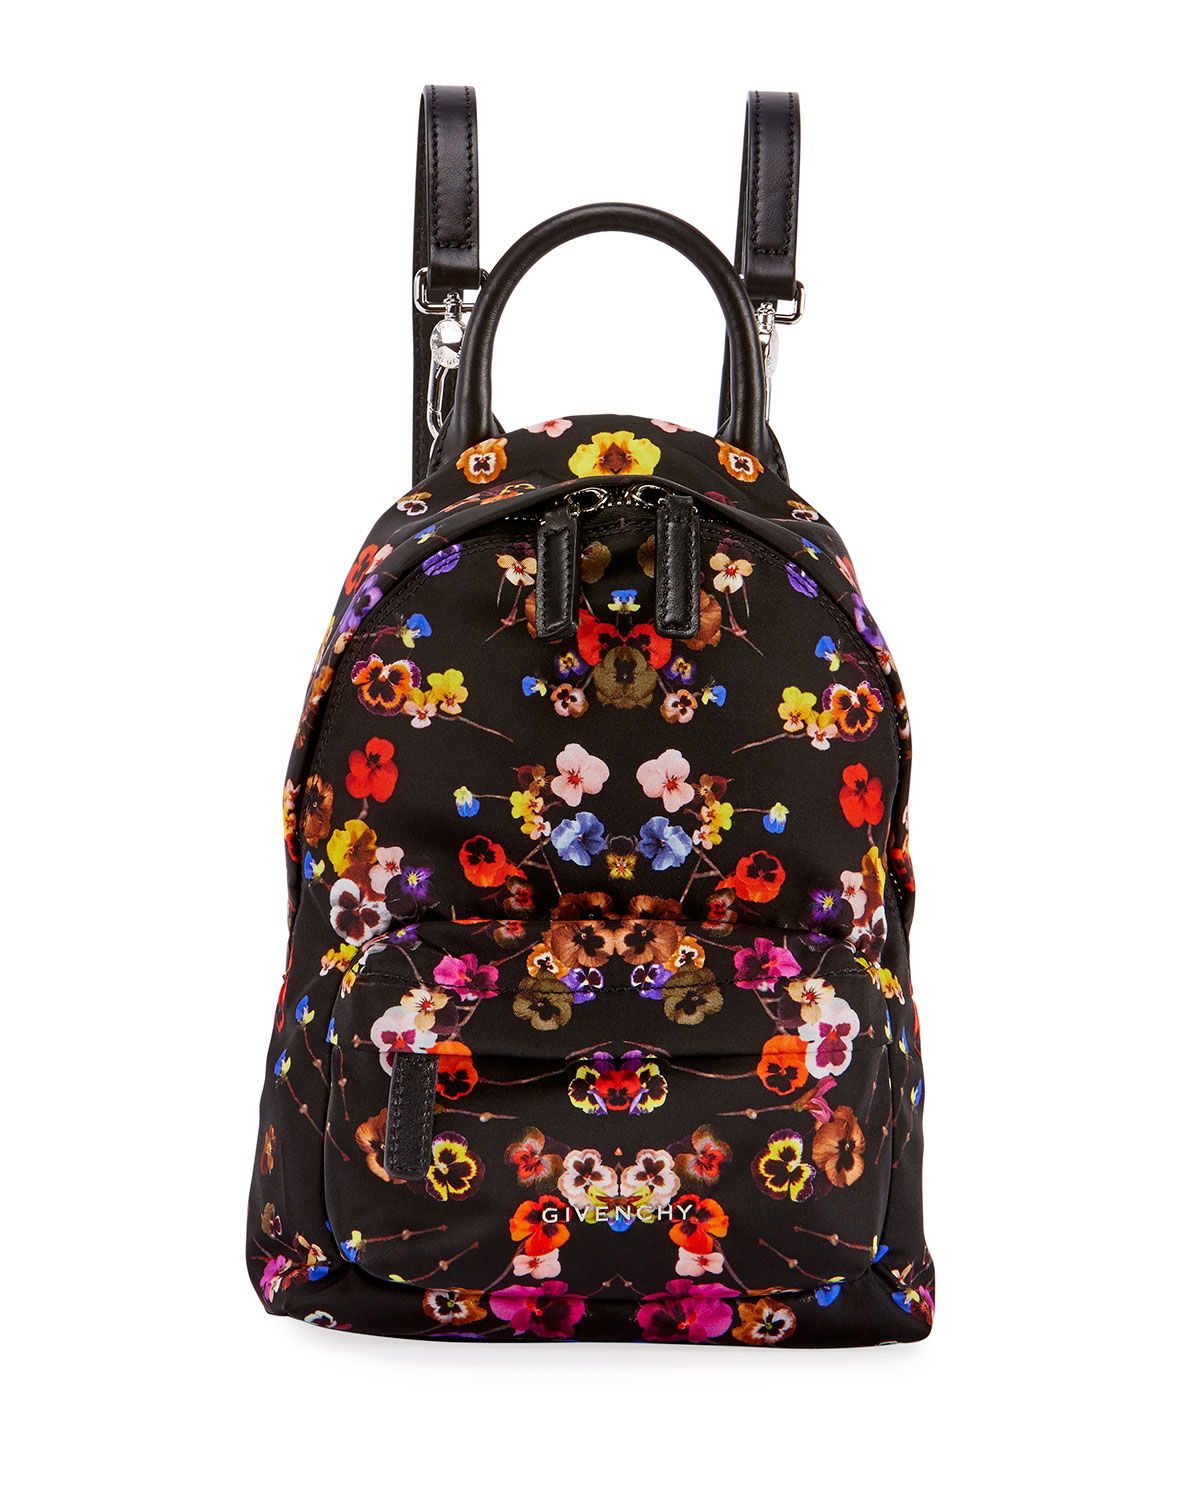 bf30f12a5fb Givenchy Nano Pansies Floral-Print Backpack, Multi   Neiman Marcus